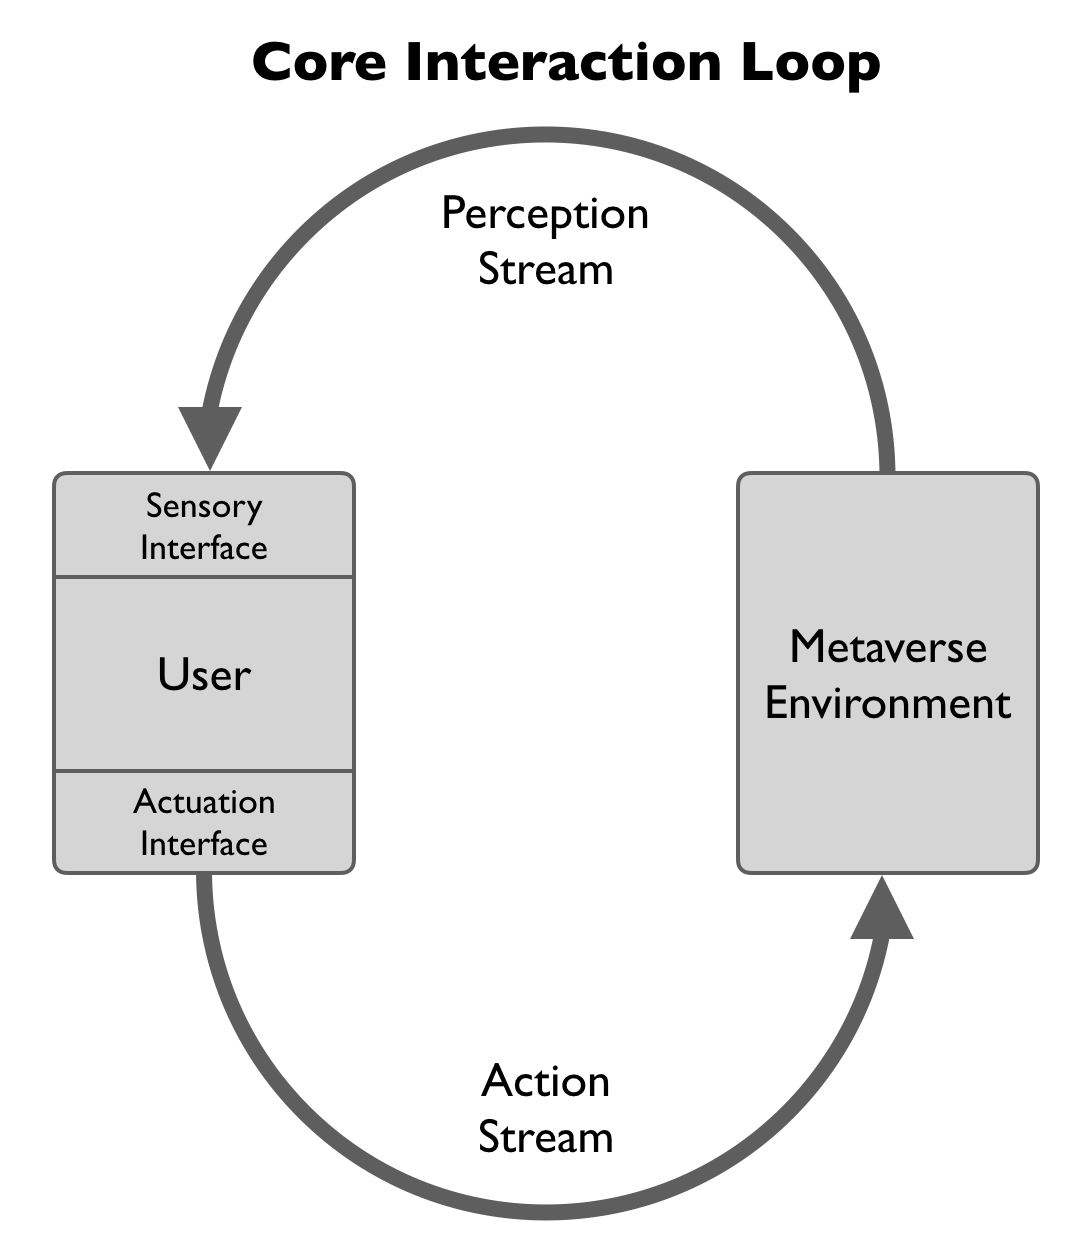 The core interaction loop consists of a user interacting with the metaverse by receiving a perception stream and in turn sending a stream of actions.